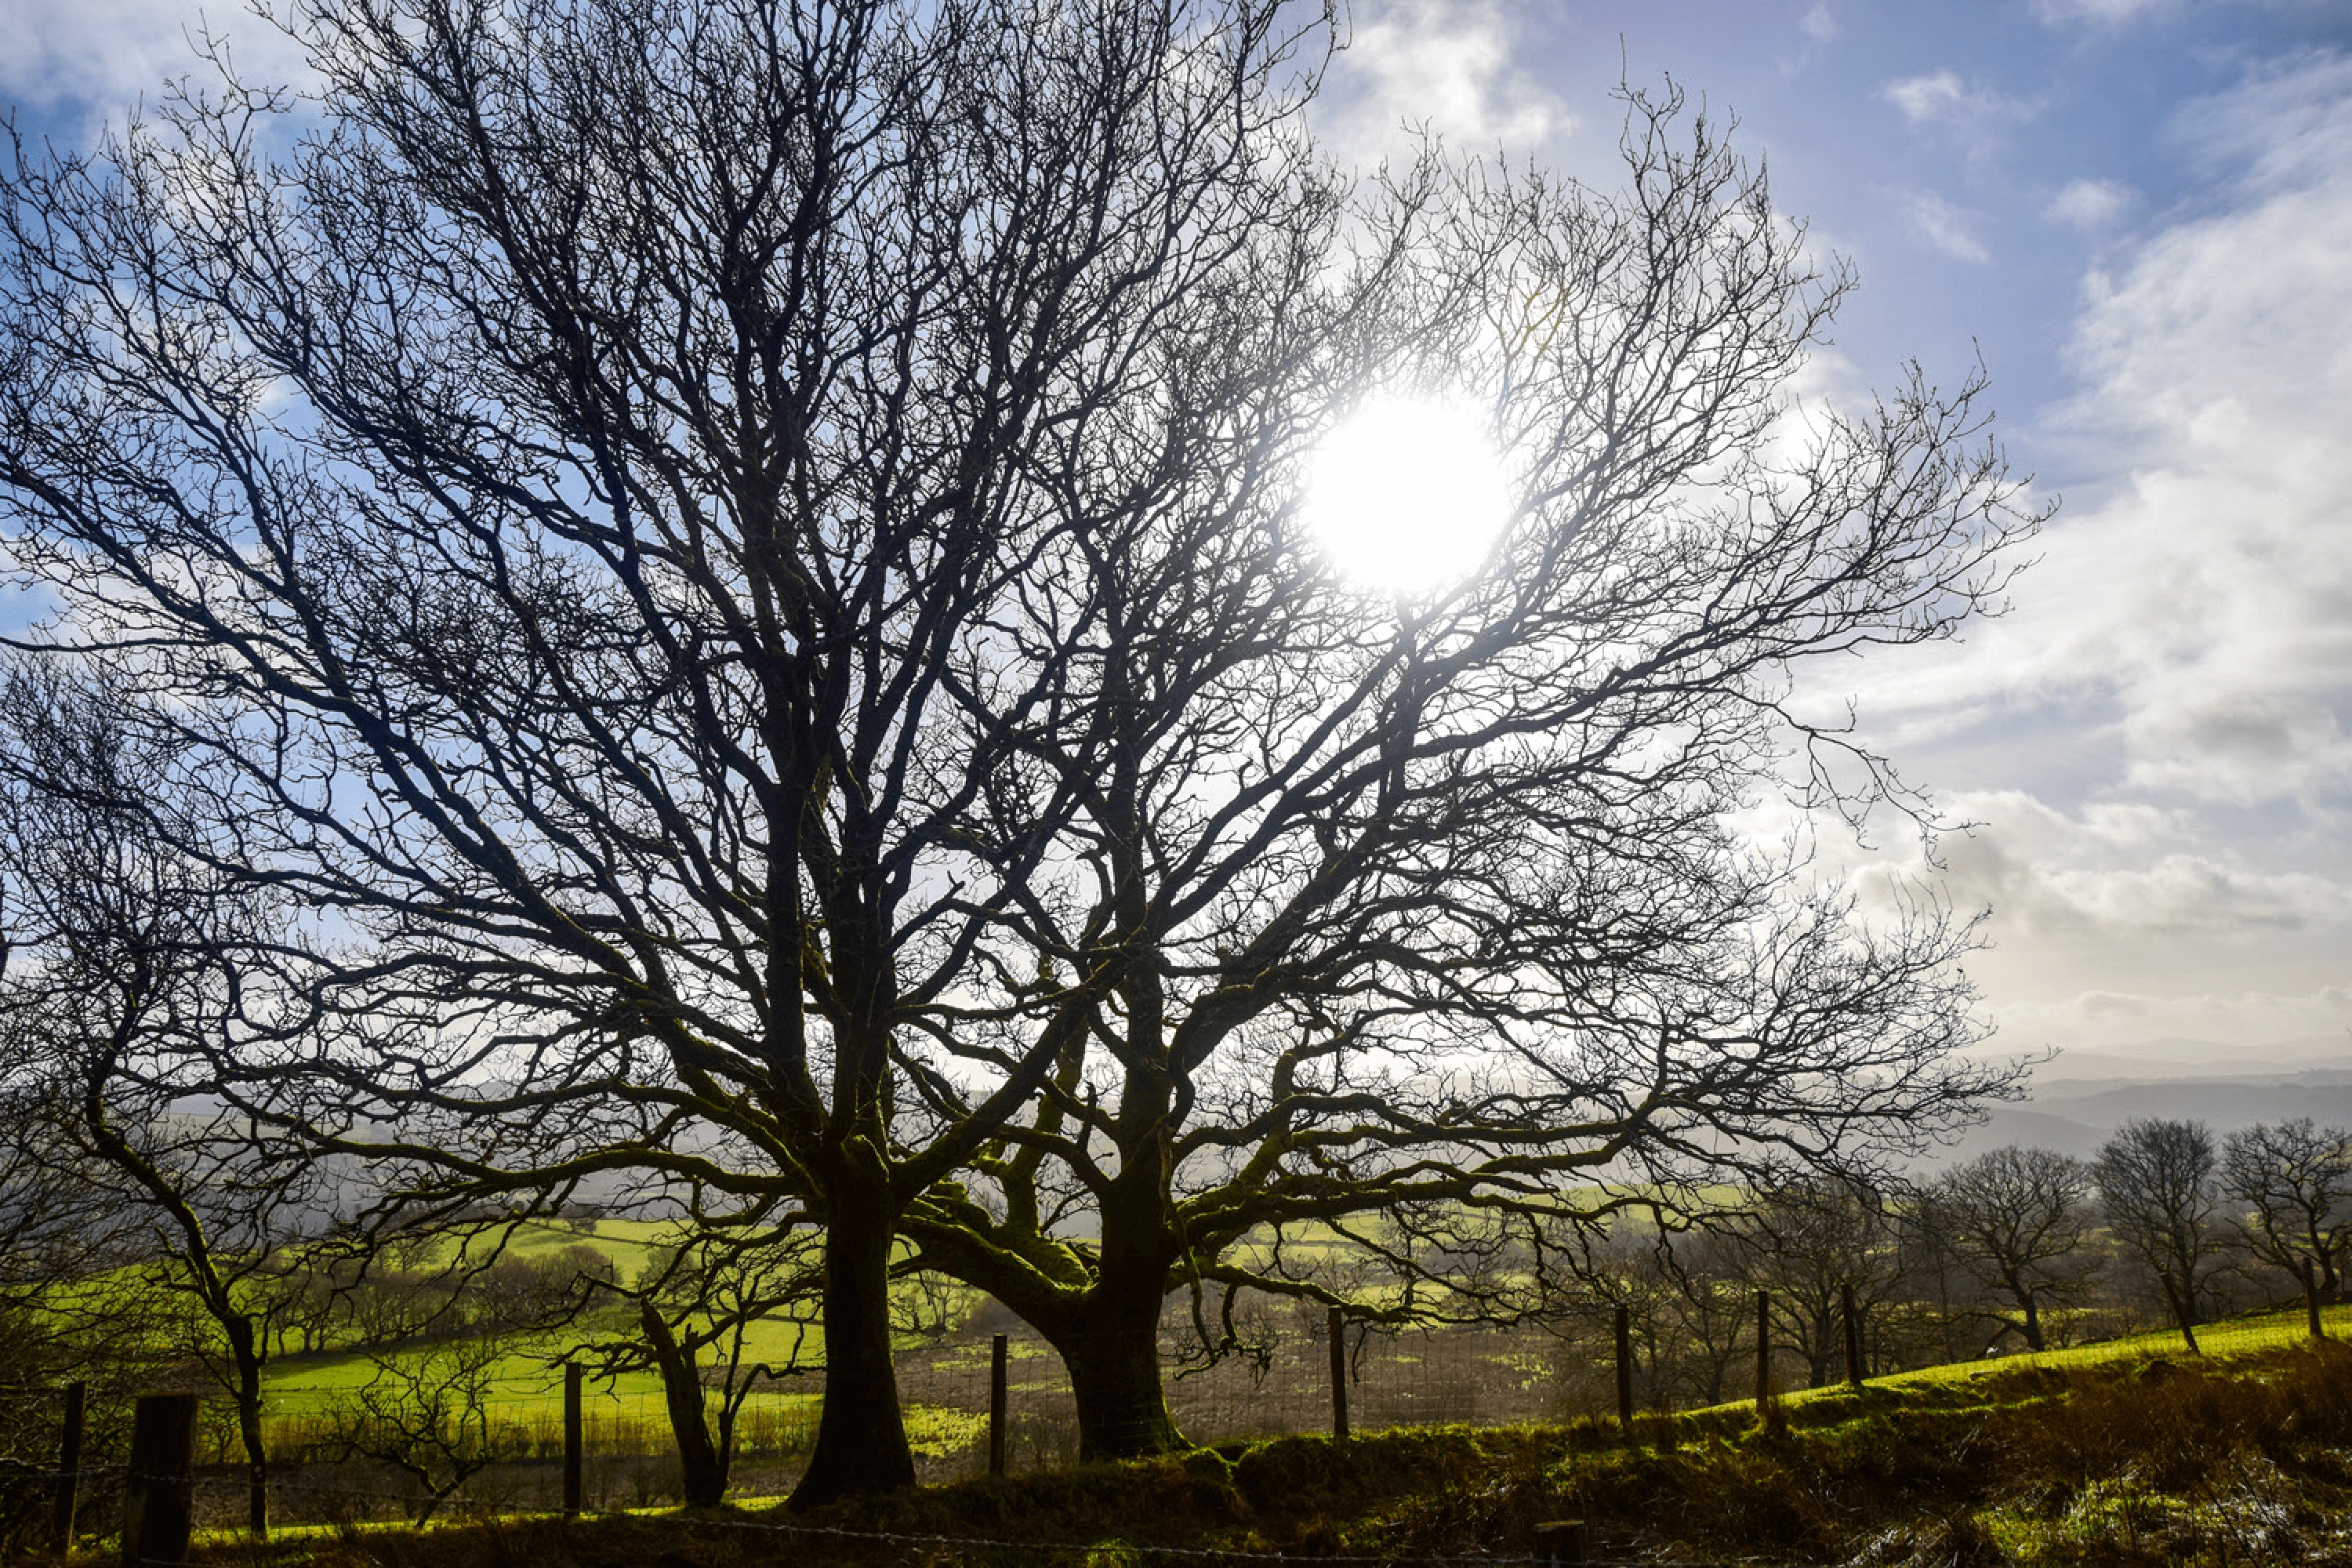 Tree in sunshine